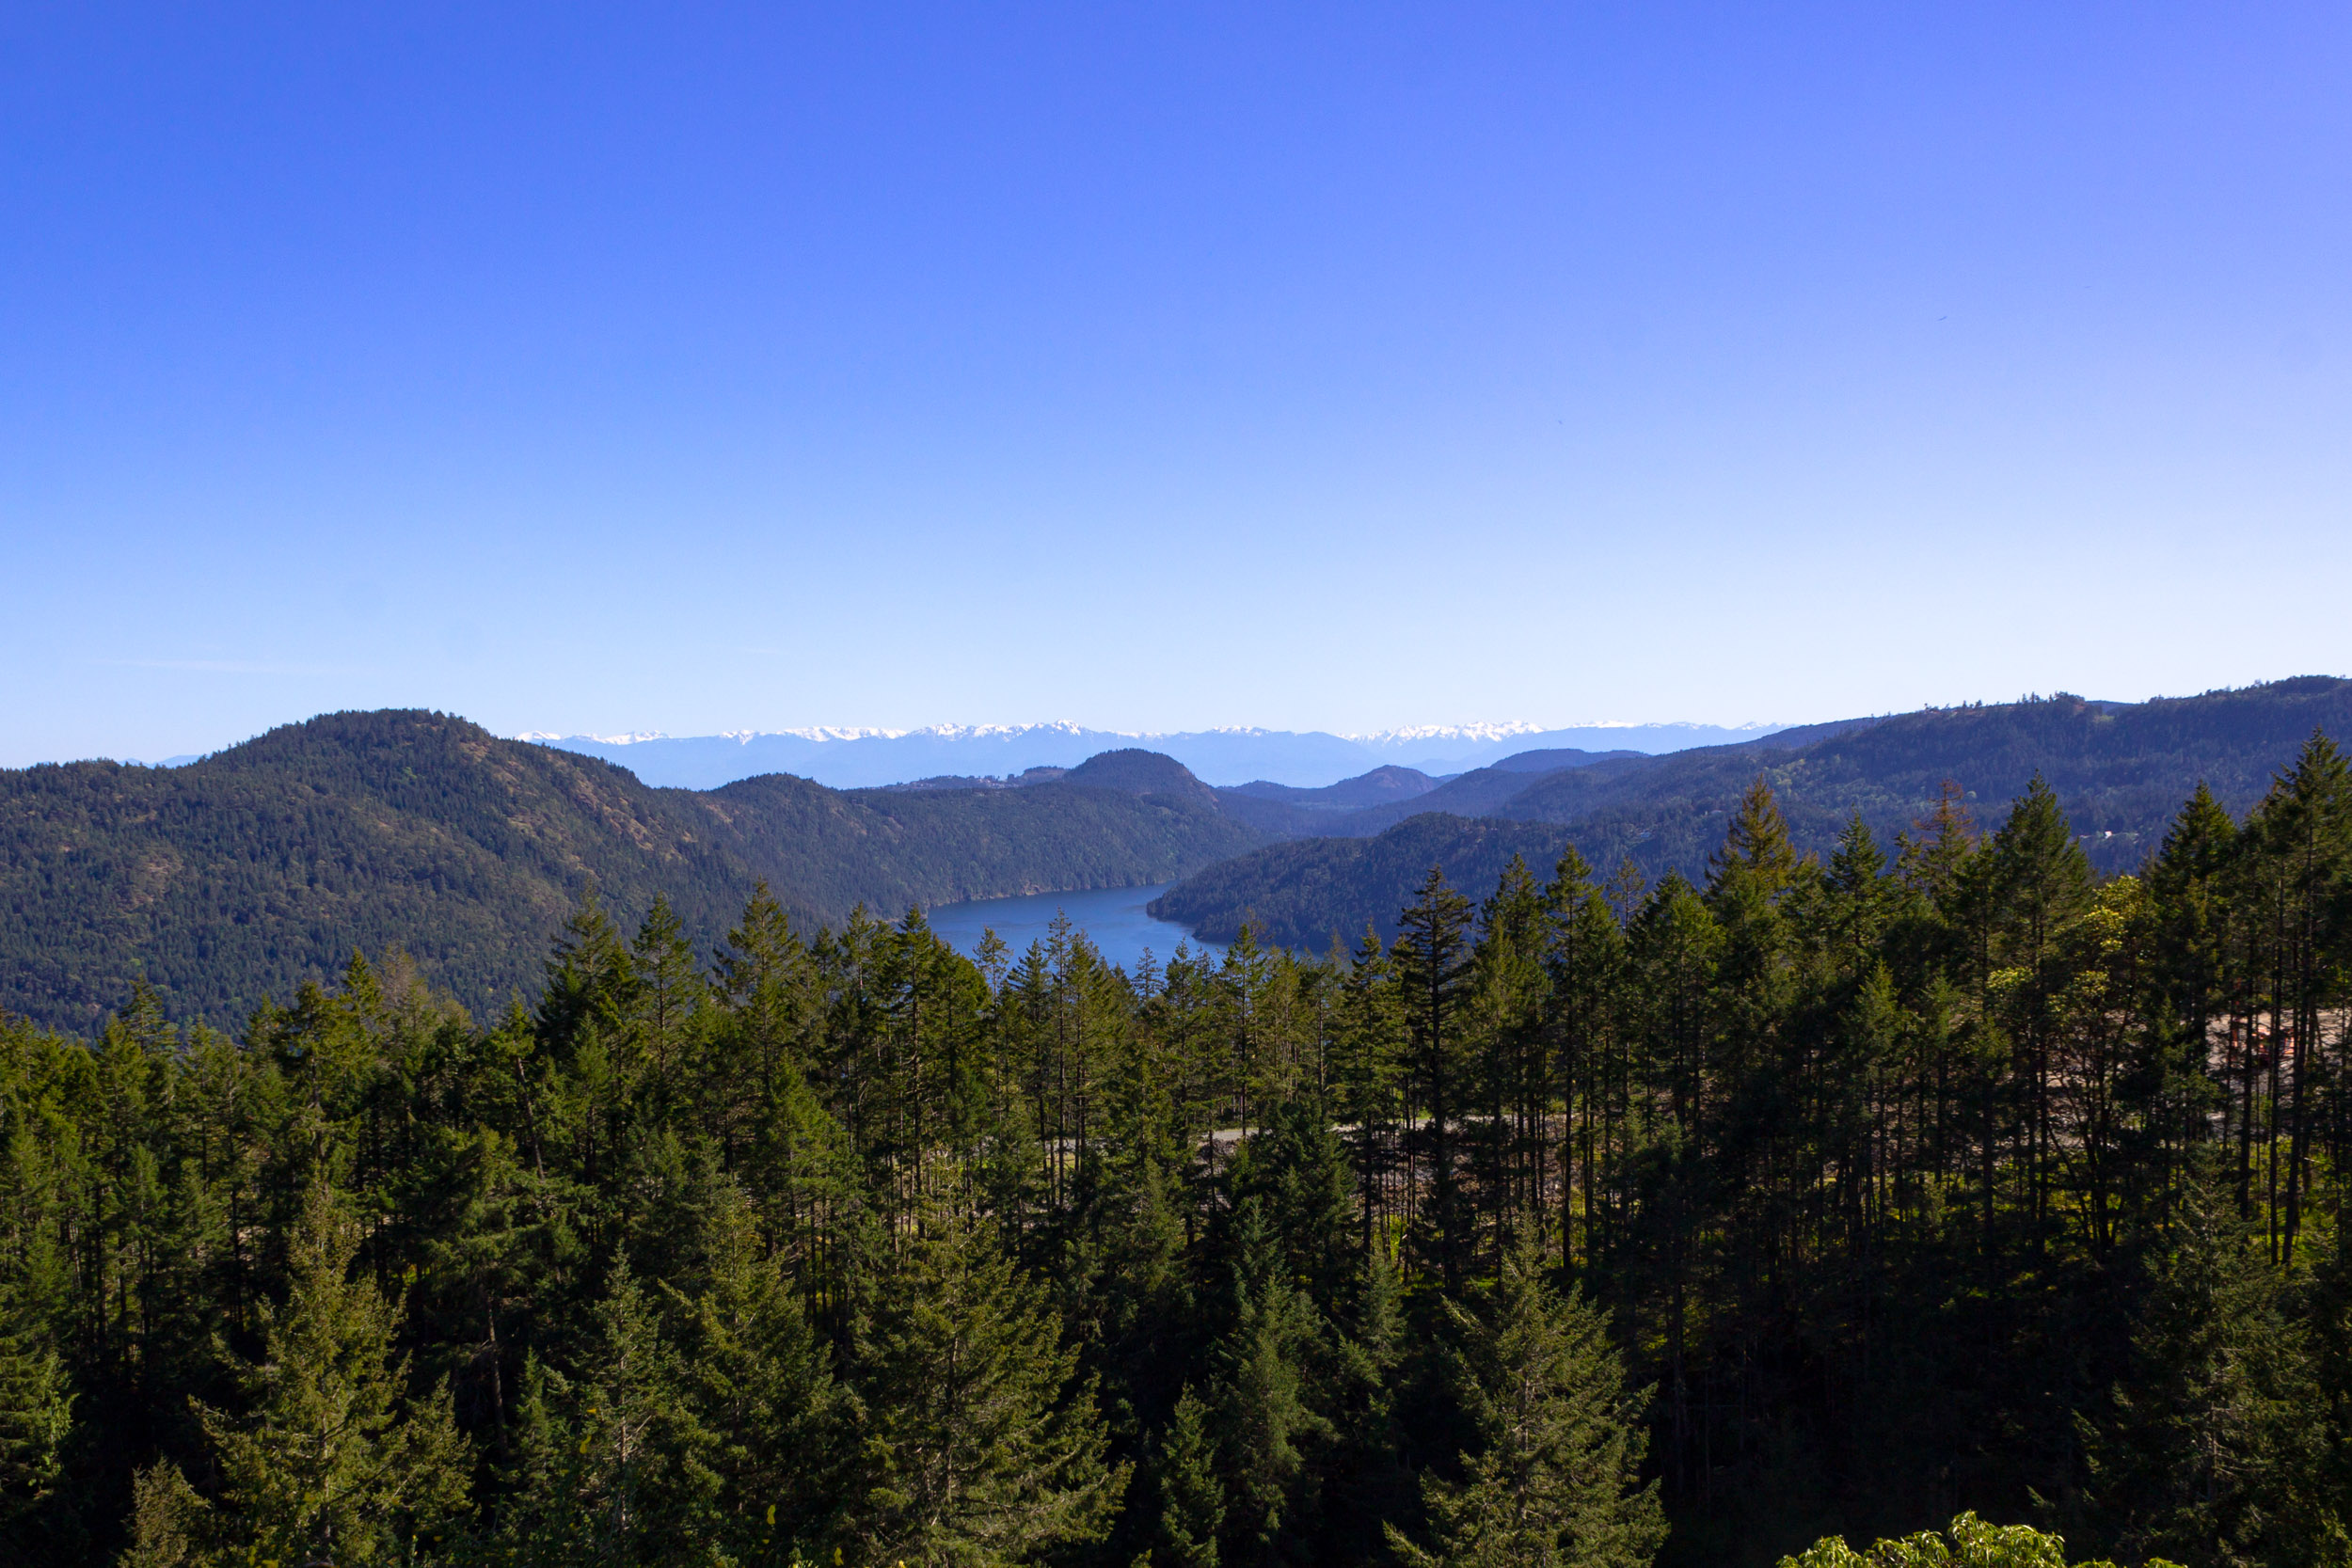 View from Malahat